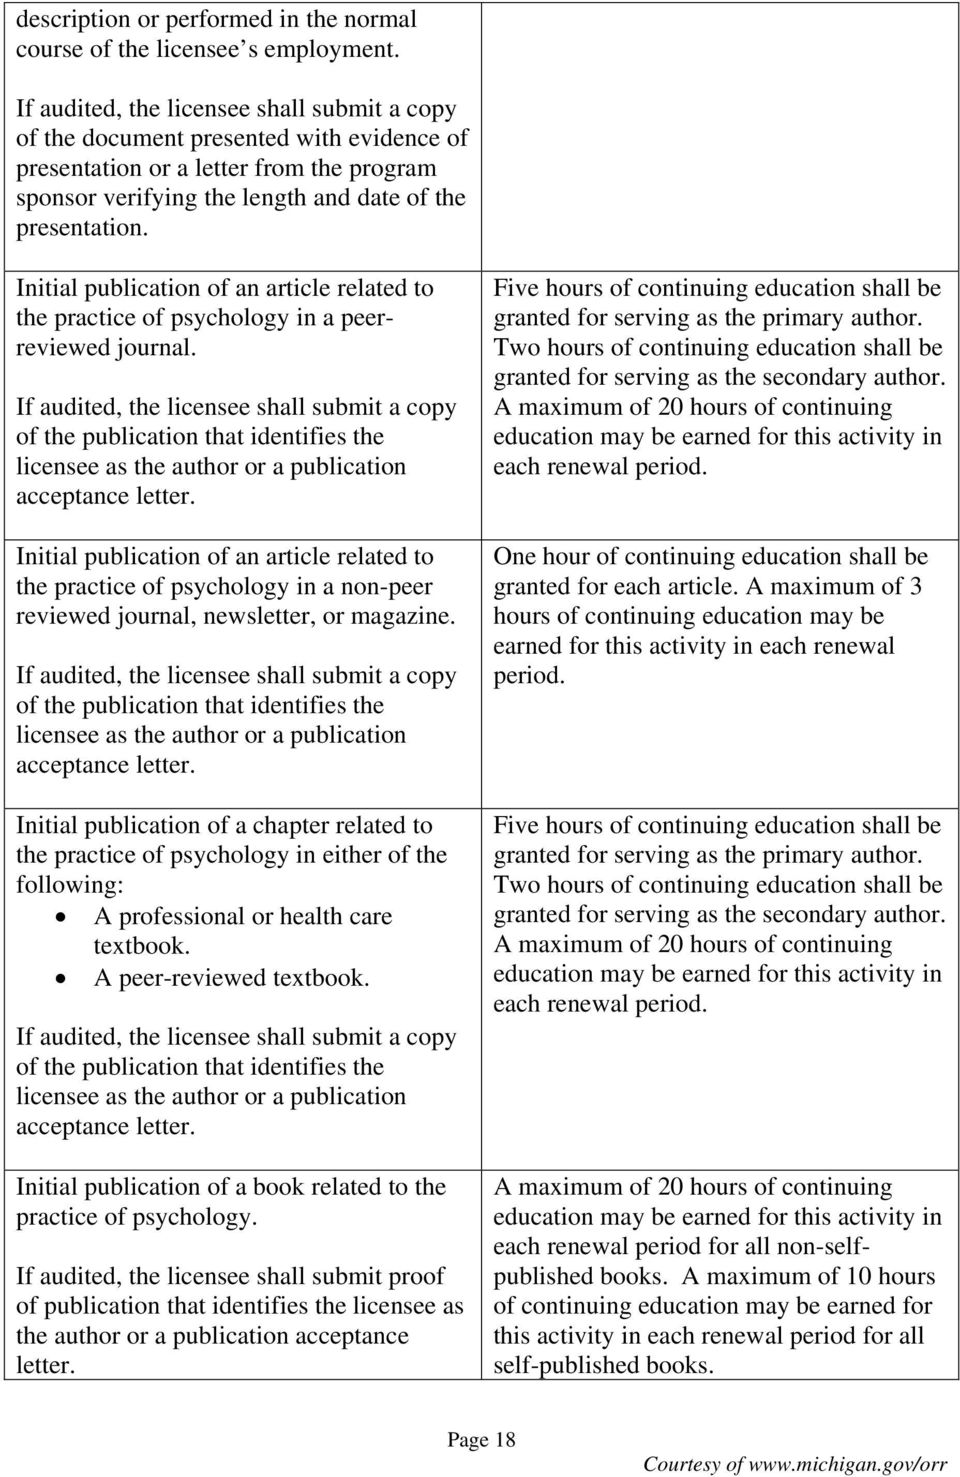 Initial publication of an article related to the practice of psychology in a peerreviewed journal.